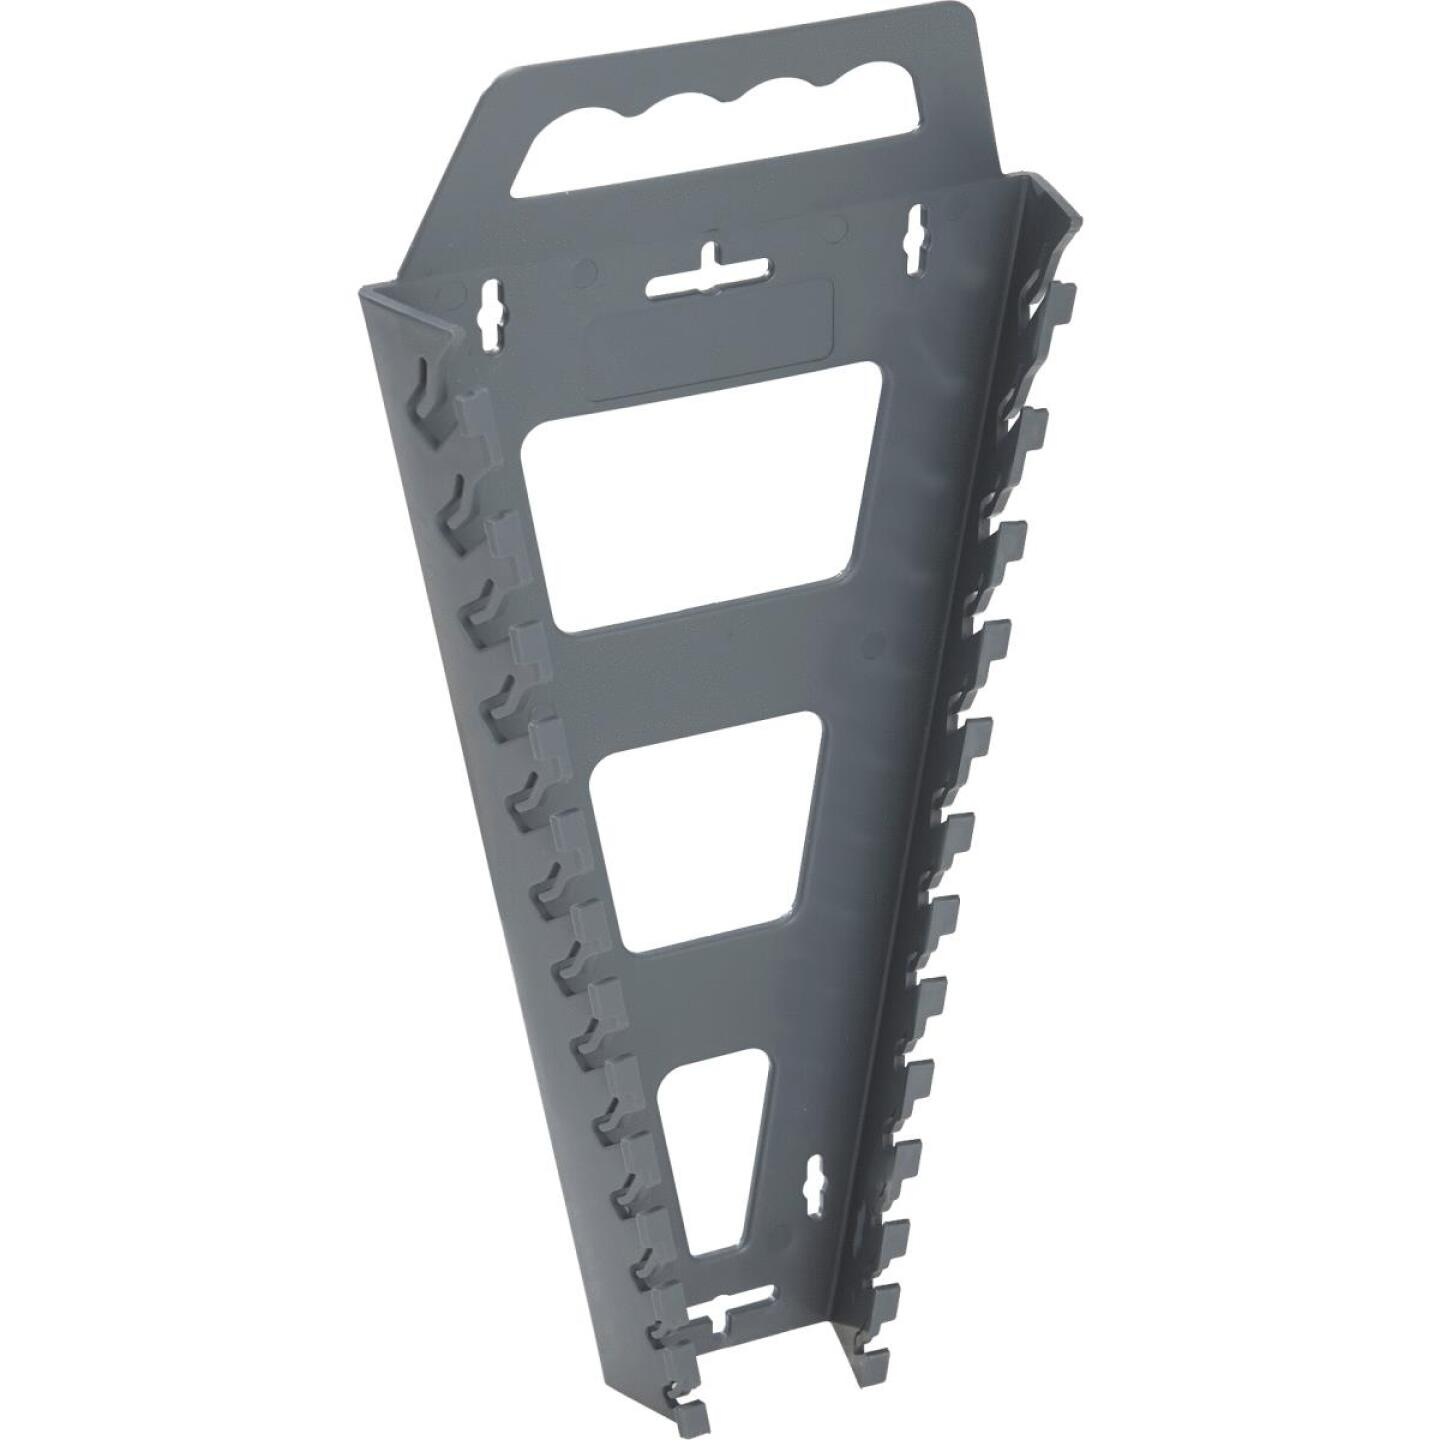 Channellock 13-Wrench Universal Combination Wrench Holder Image 2